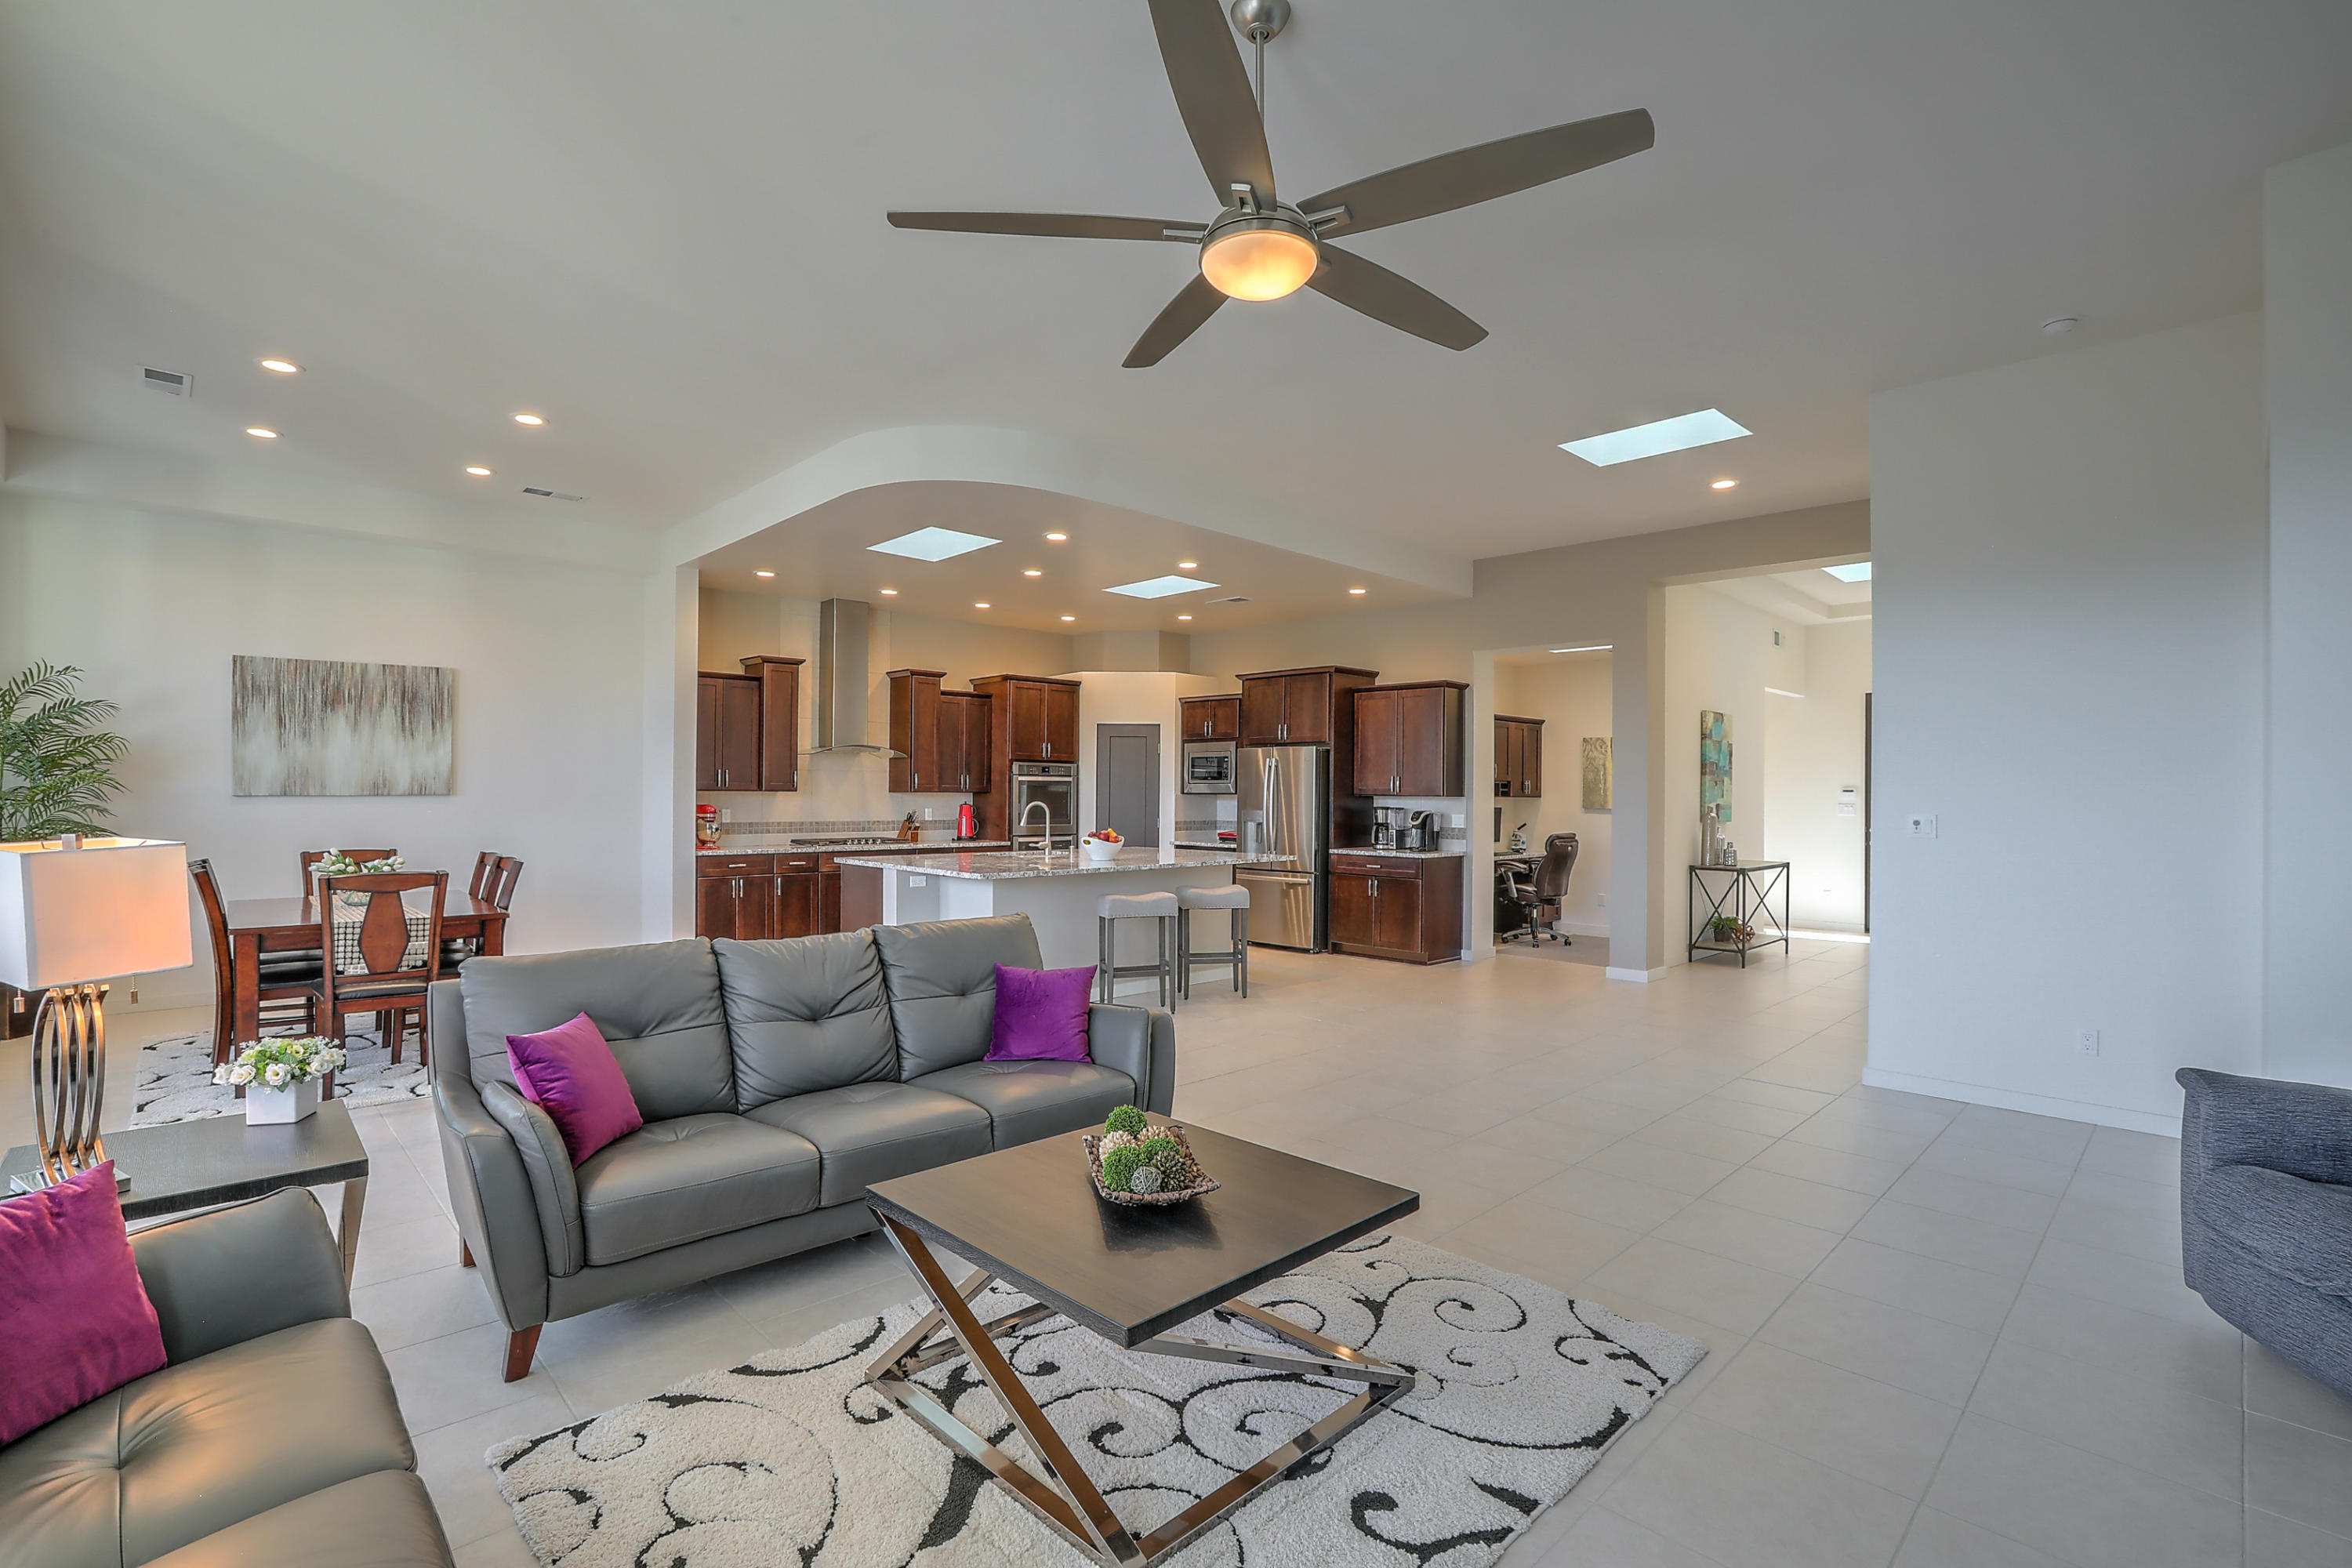 Practically brand-new contemporary Home located in a Gated Community in 87122, North Star, Desert Ridge & La Cueva districts! Seller relocating January so there is time to get yours sold or simply plan for a fresh start in 2021! You will love the open, light filled home, raised ceilings, clean lines & Chic architectural finishes - ceiling treatments, custom lighting, granite throughout & sleek tiled backsplash. Separated owner's suite, large rooms, 2 walk-in closets, full baths w/double sinks, spacious living/kitchen - great for entertaining, living/dining combo w/cozy fireplace & a perfect tucked in study w/built in desk, cabinetry & counterspace! Private, easy-care yards relax by the firepit, evergreen turf lawn & expansive covered patio, it's everything you want in your ABQ Dream Home!